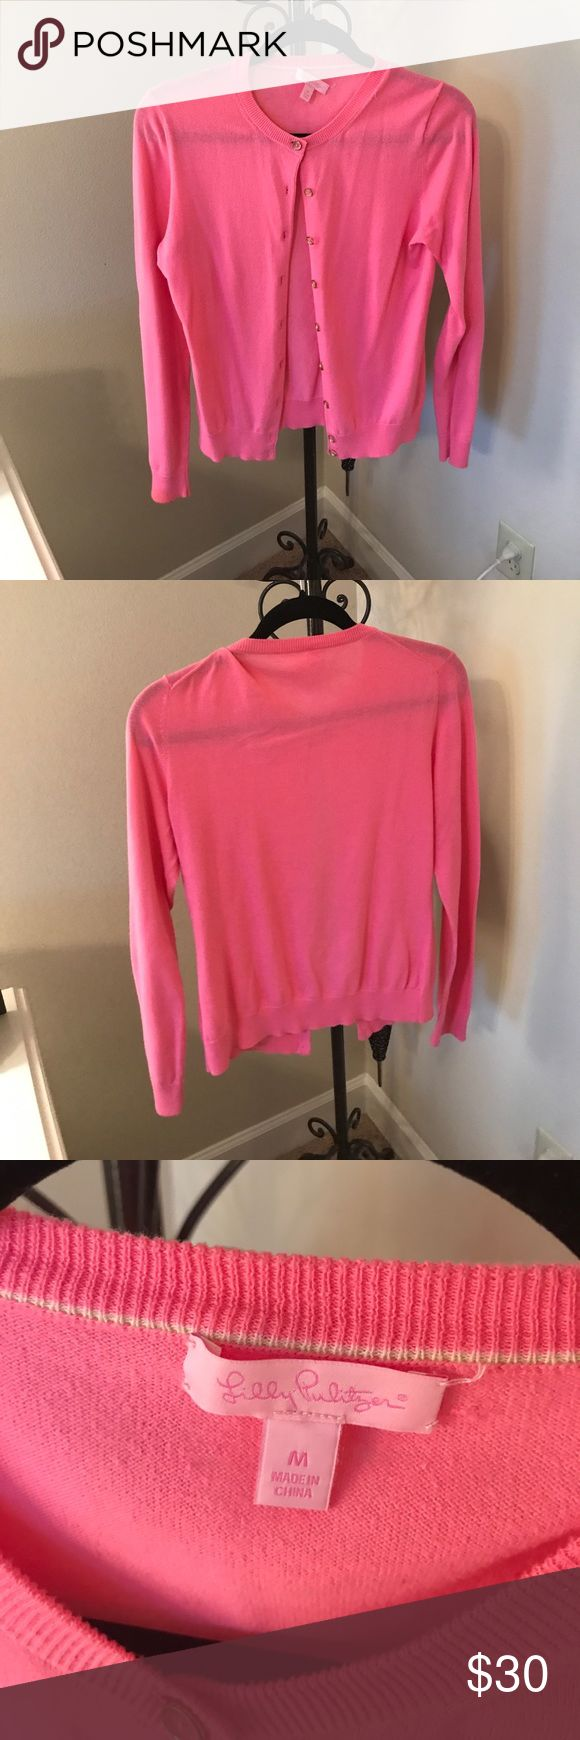 Lilly Pulitzer light pink cardigan Light pink cardigan from Lilly Pulitzer. Excellent condition, the tag did come loose the last time I had this cleaned but other than that it's in perfect condition with no signs of wear. Lilly Pulitzer Sweaters Cardigans